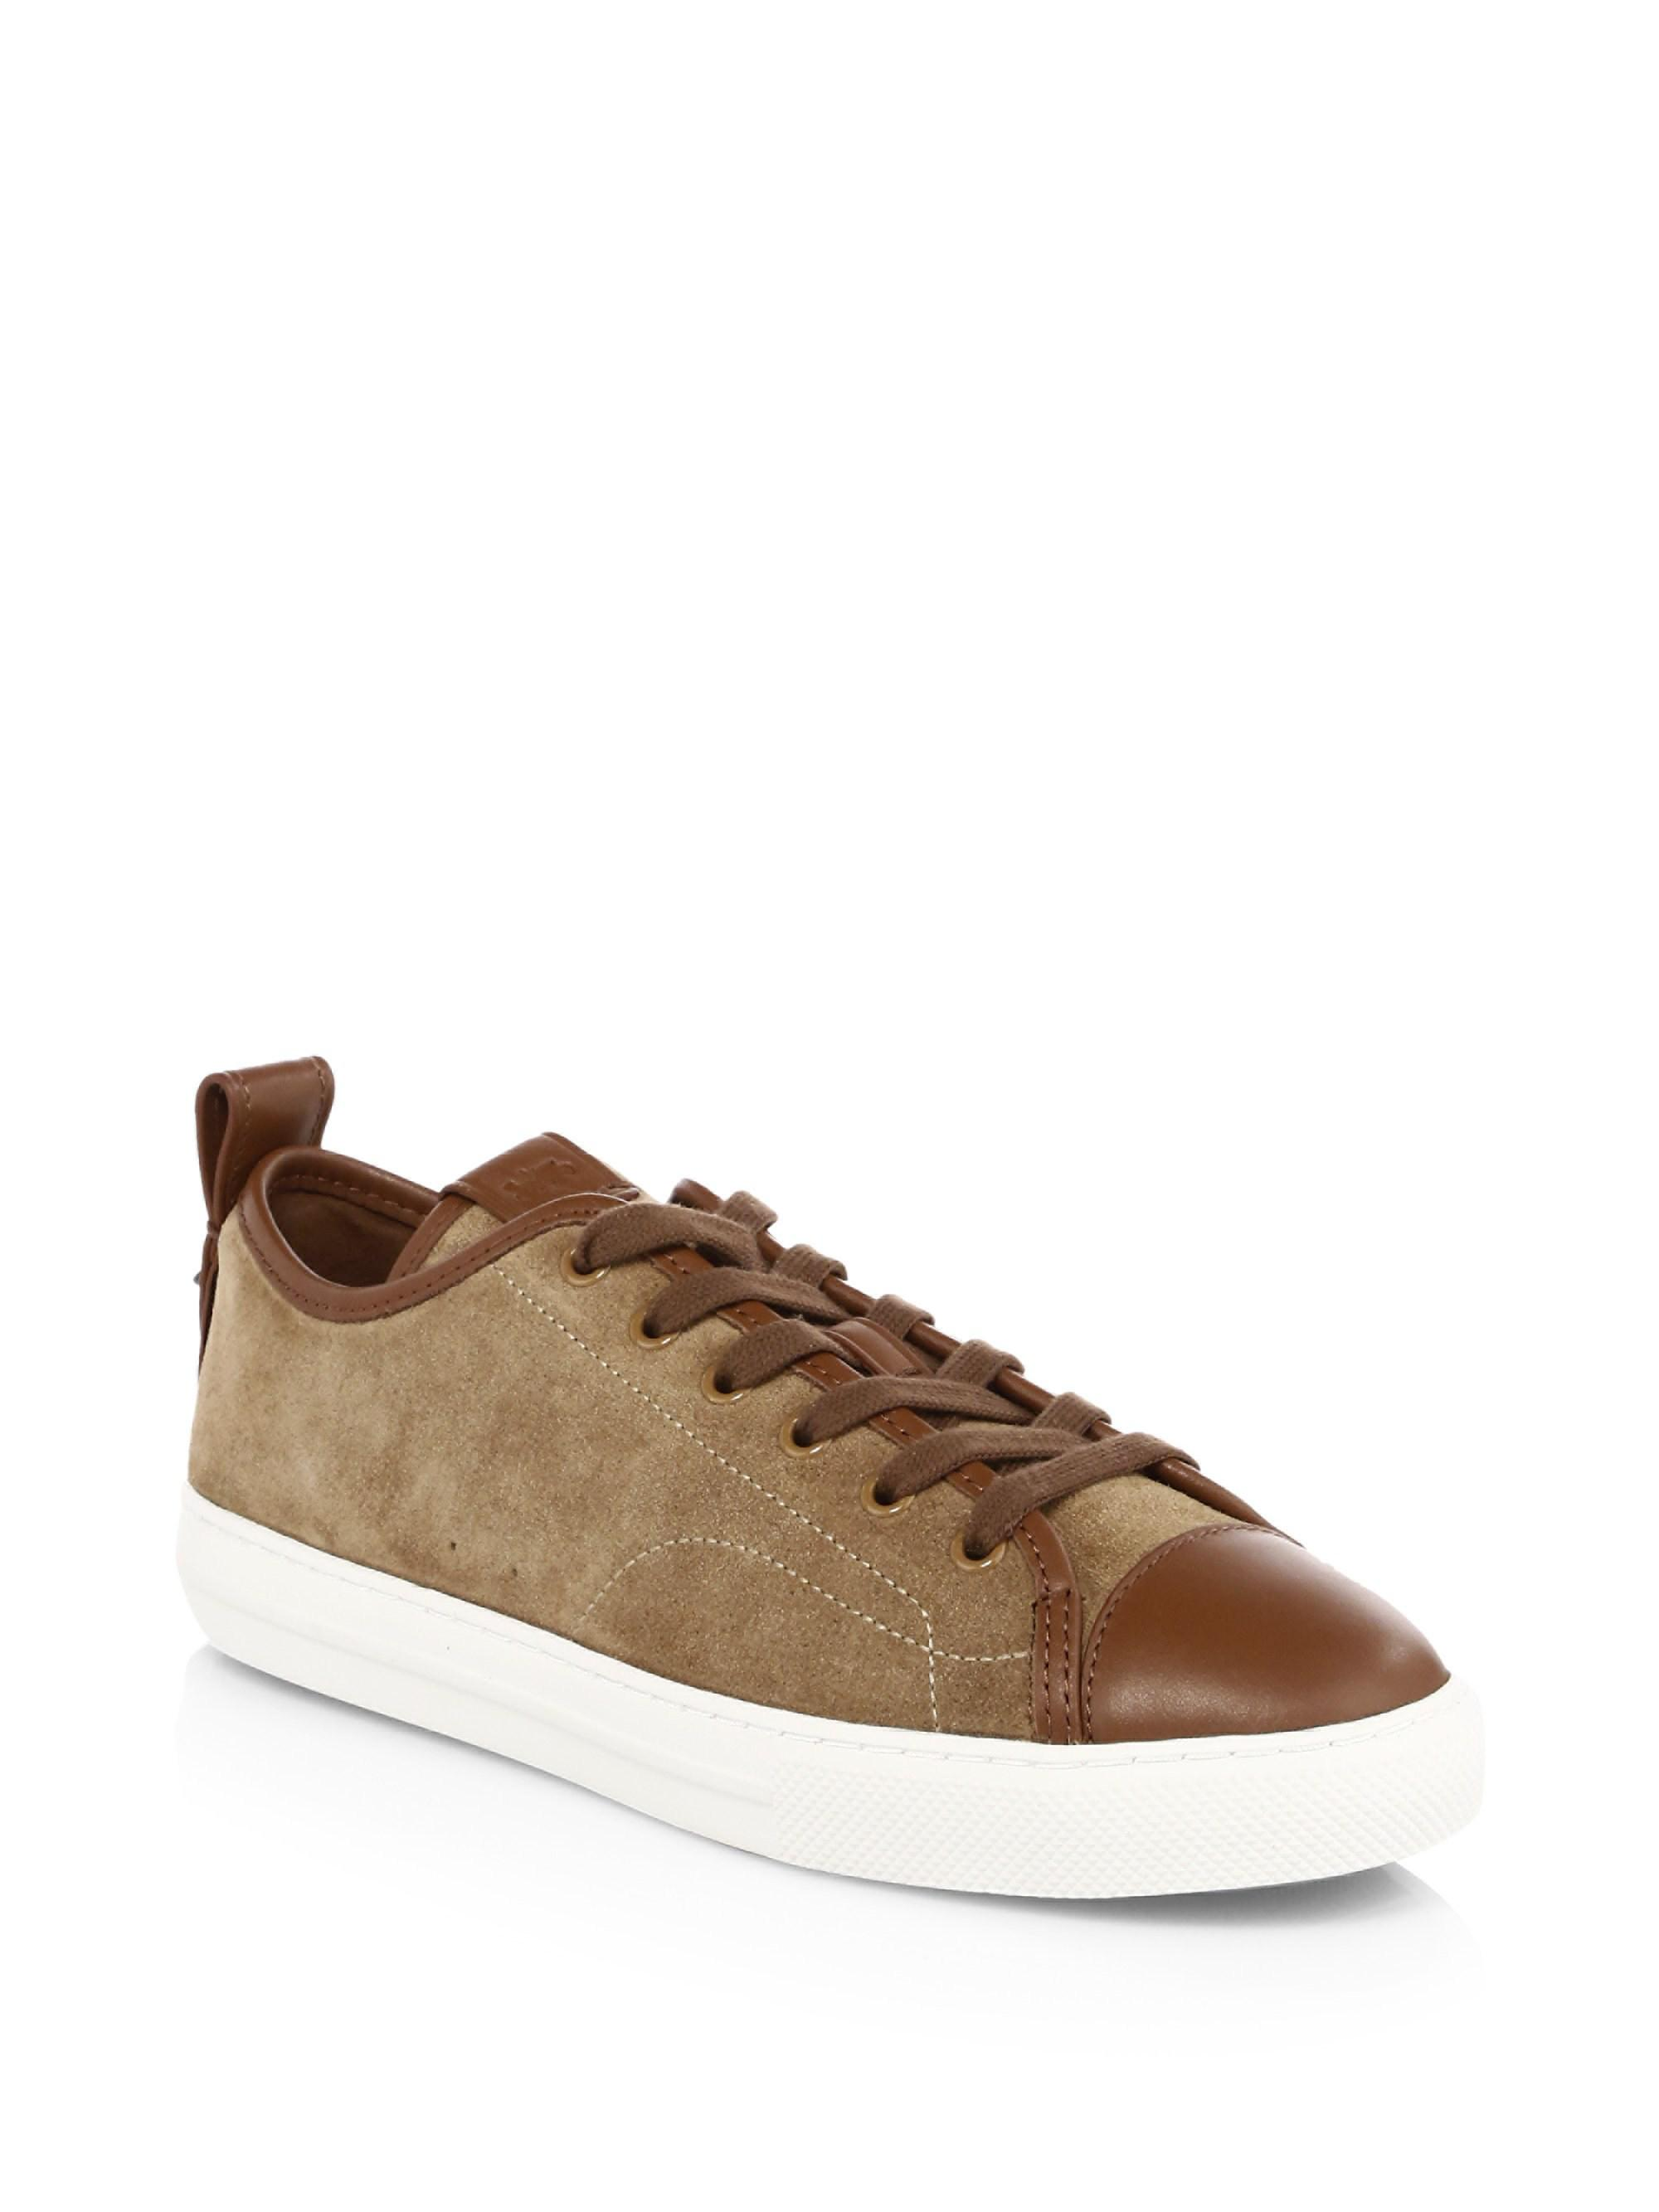 Coach Suede Low-Top Sneakers L3odL6Y